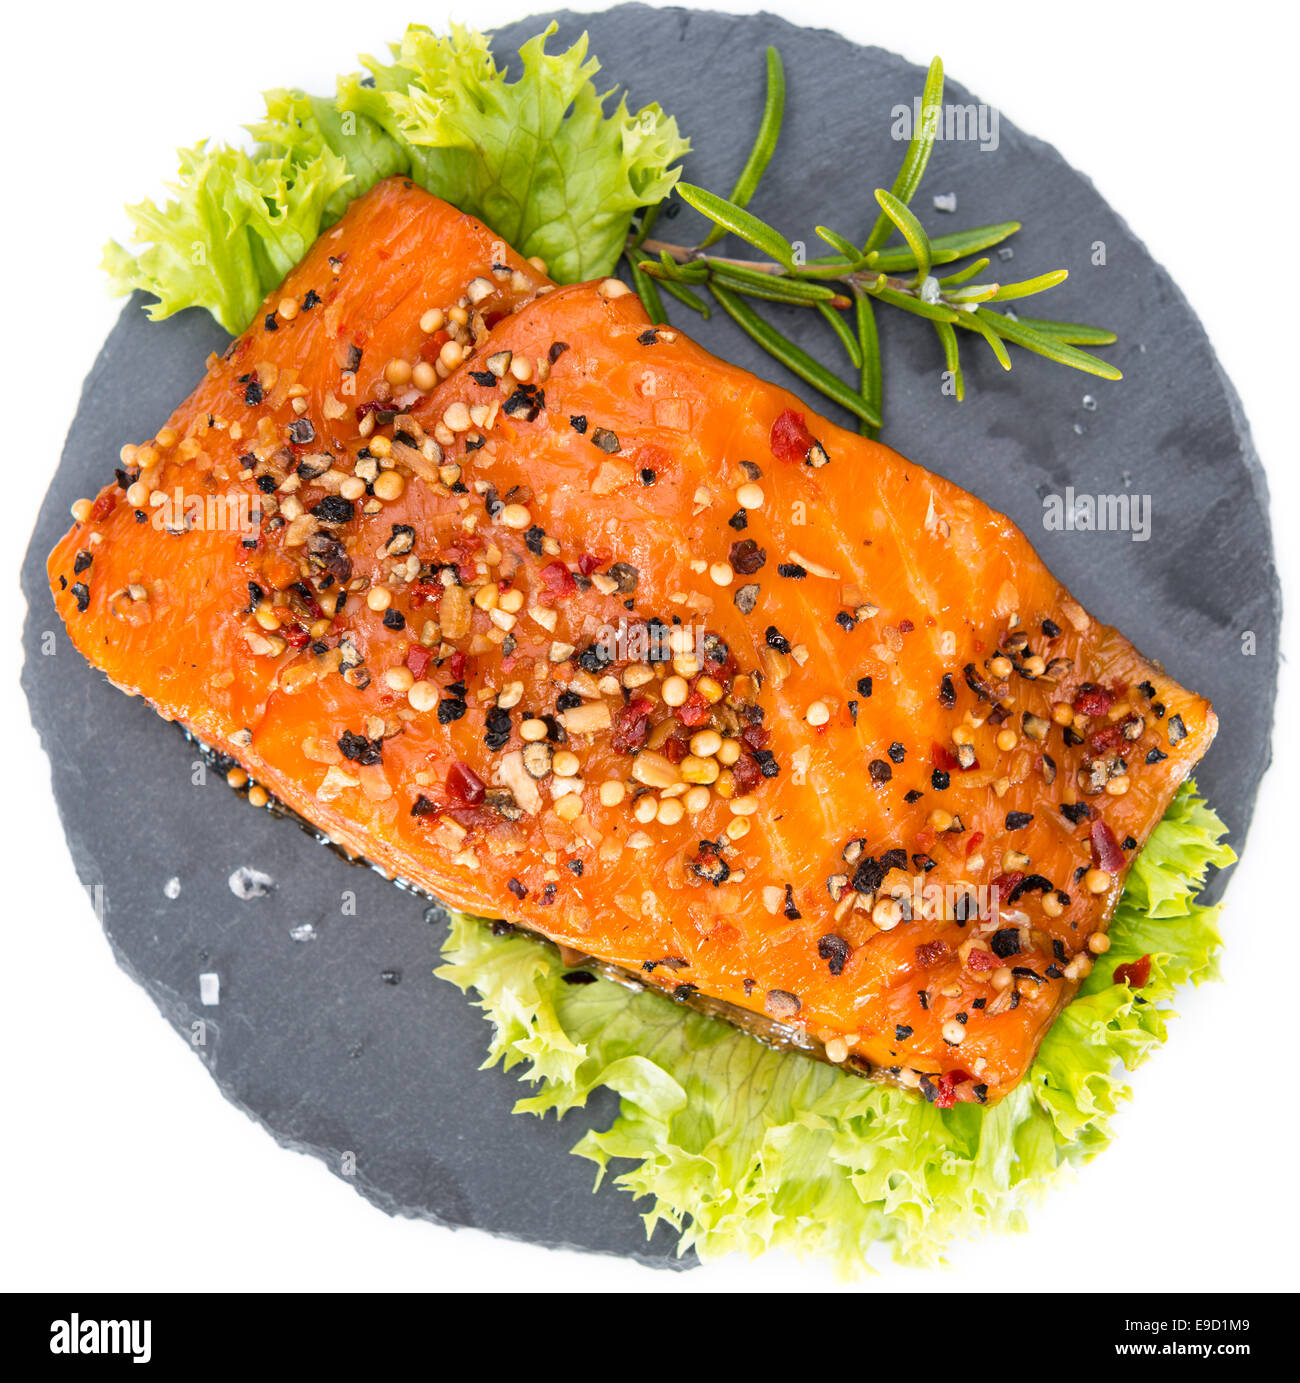 Smoked Salmon marinated with spices isolated on pure white background - Stock Image